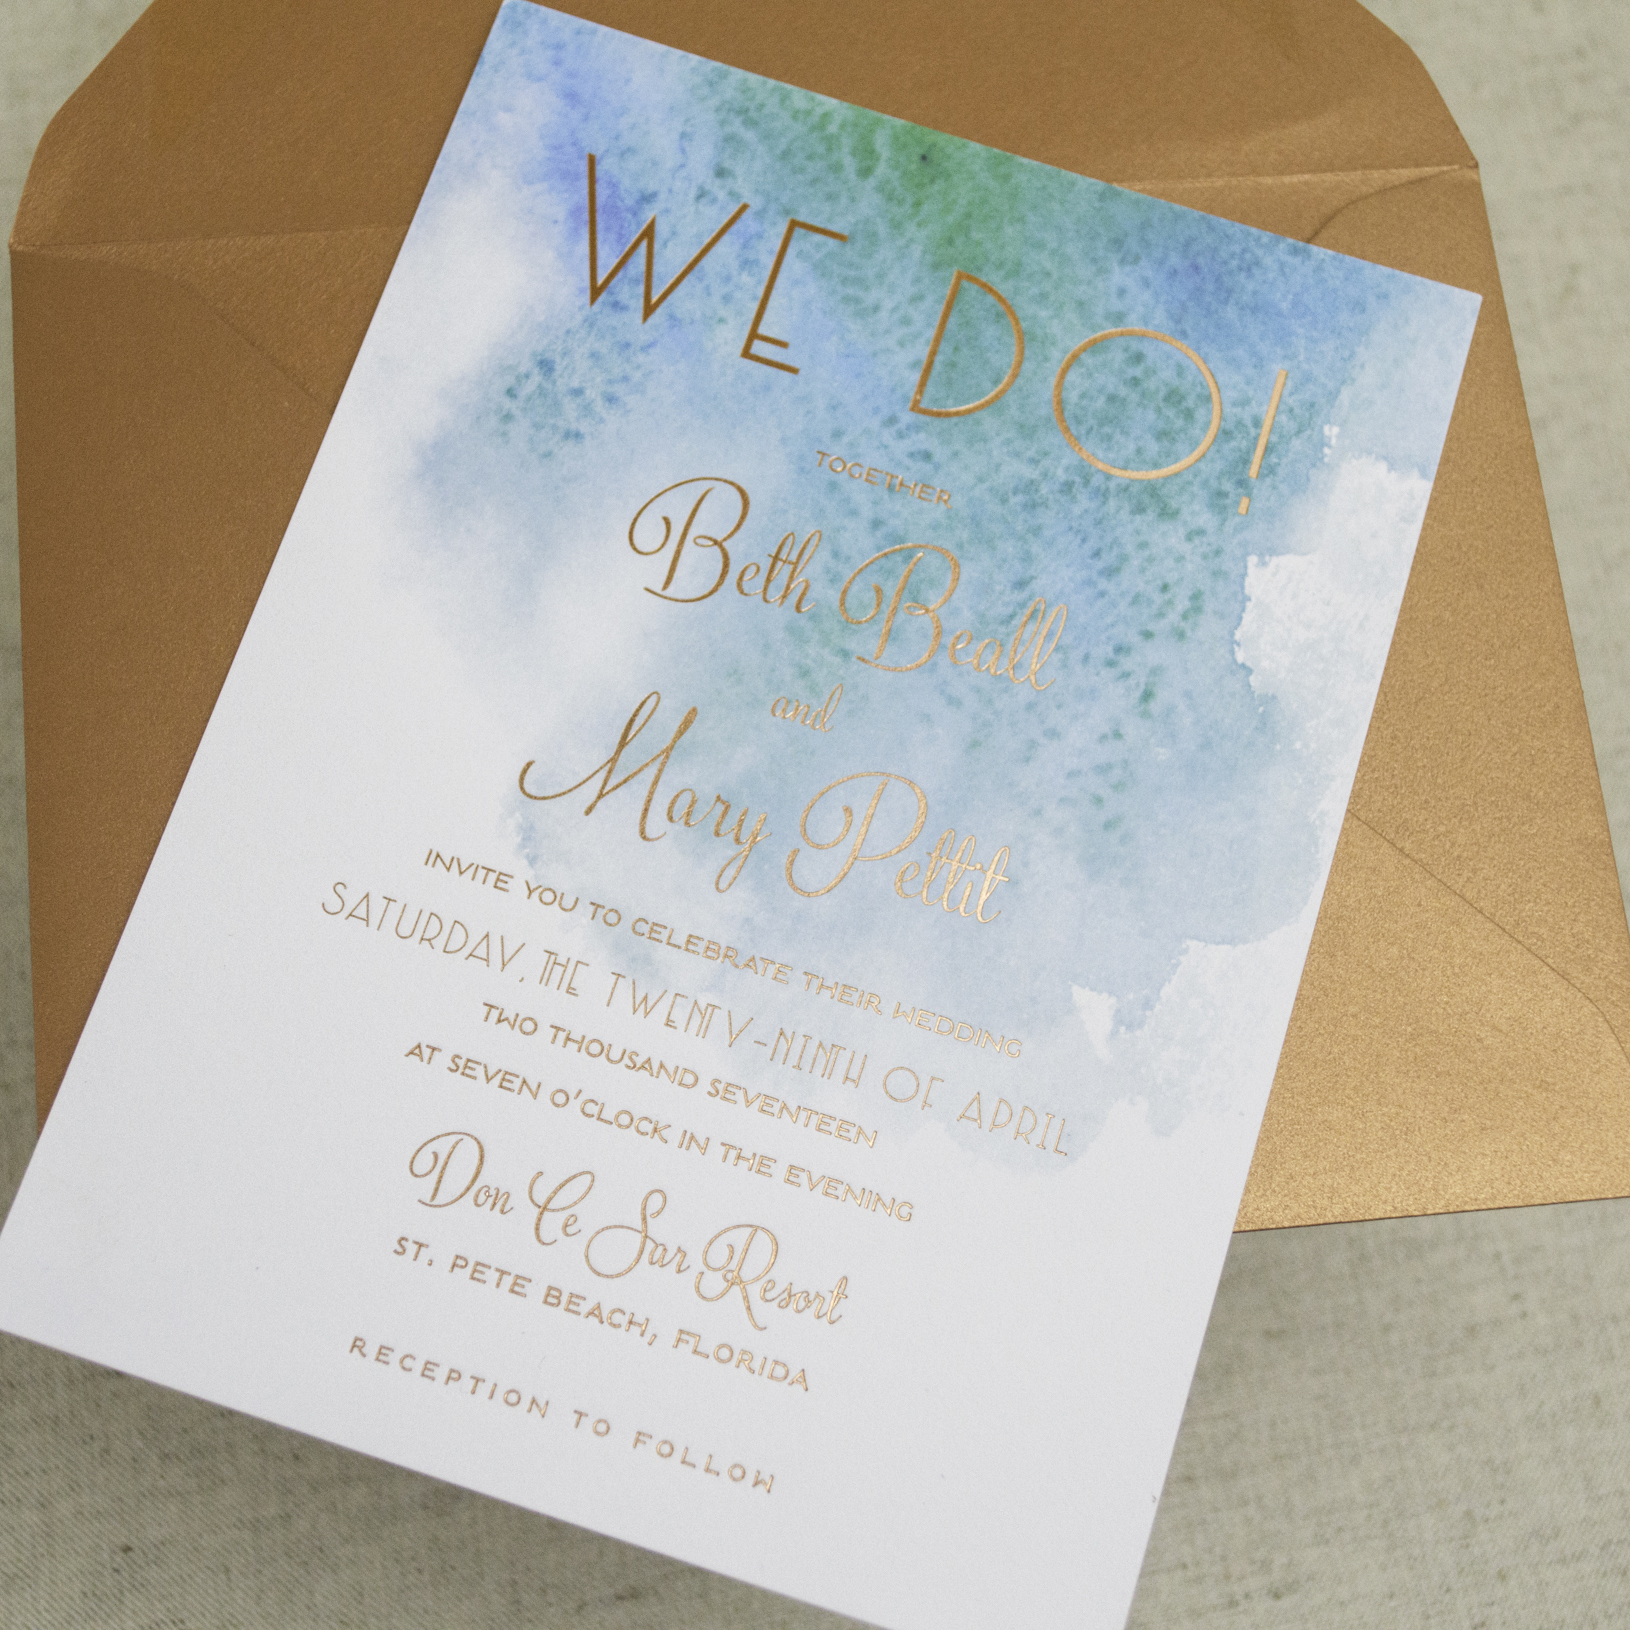 We Just Love The Way These Wedding Invitations Feature A Unique Beach Themed Design For Modern Seaside Soiree: Beach Themed Wedding Invitations At Websimilar.org